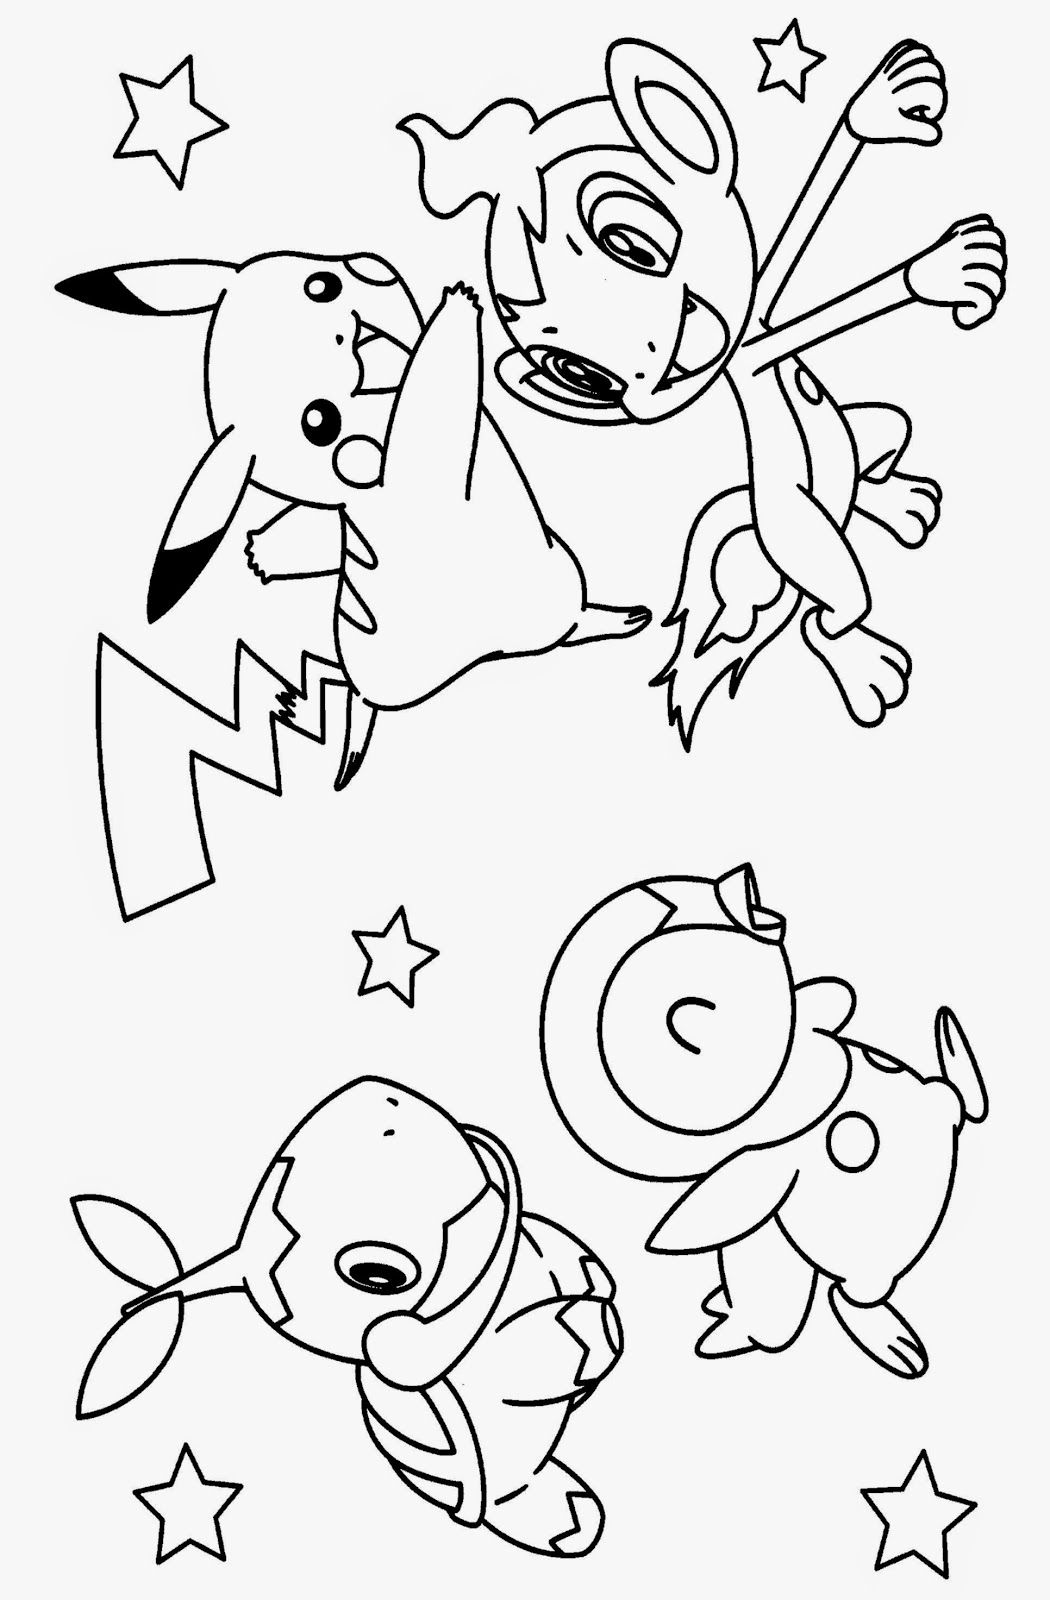 Cool Coloring Pages Elementary Kids Coloring Home Coloring Pages For Elementary